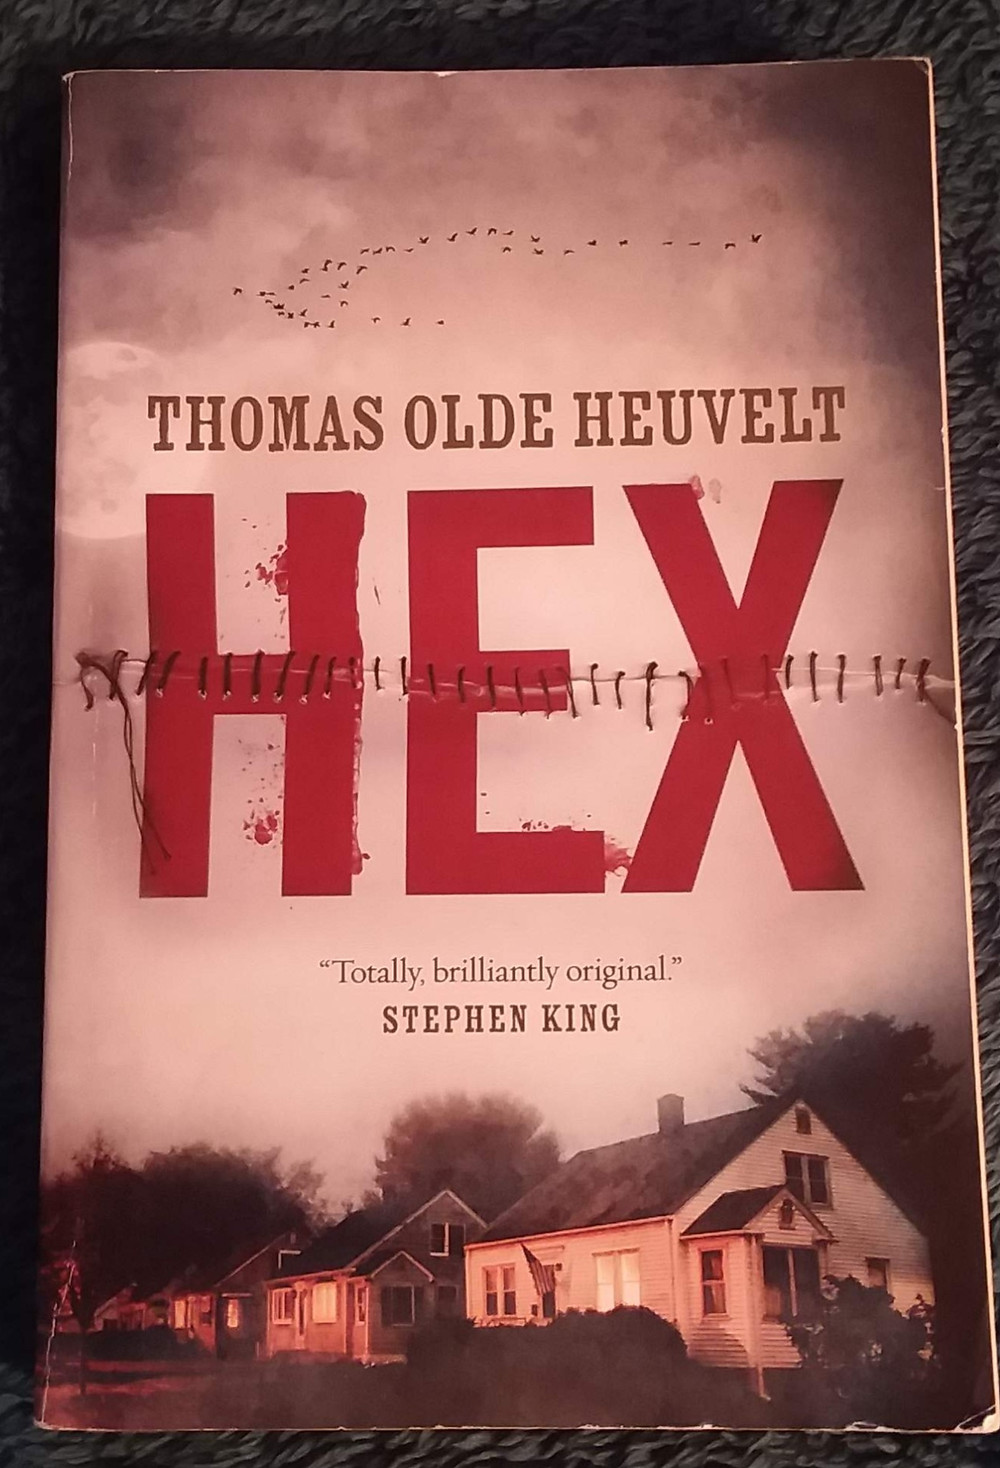 The cover of Hex by Thomas Olde Heuvelt